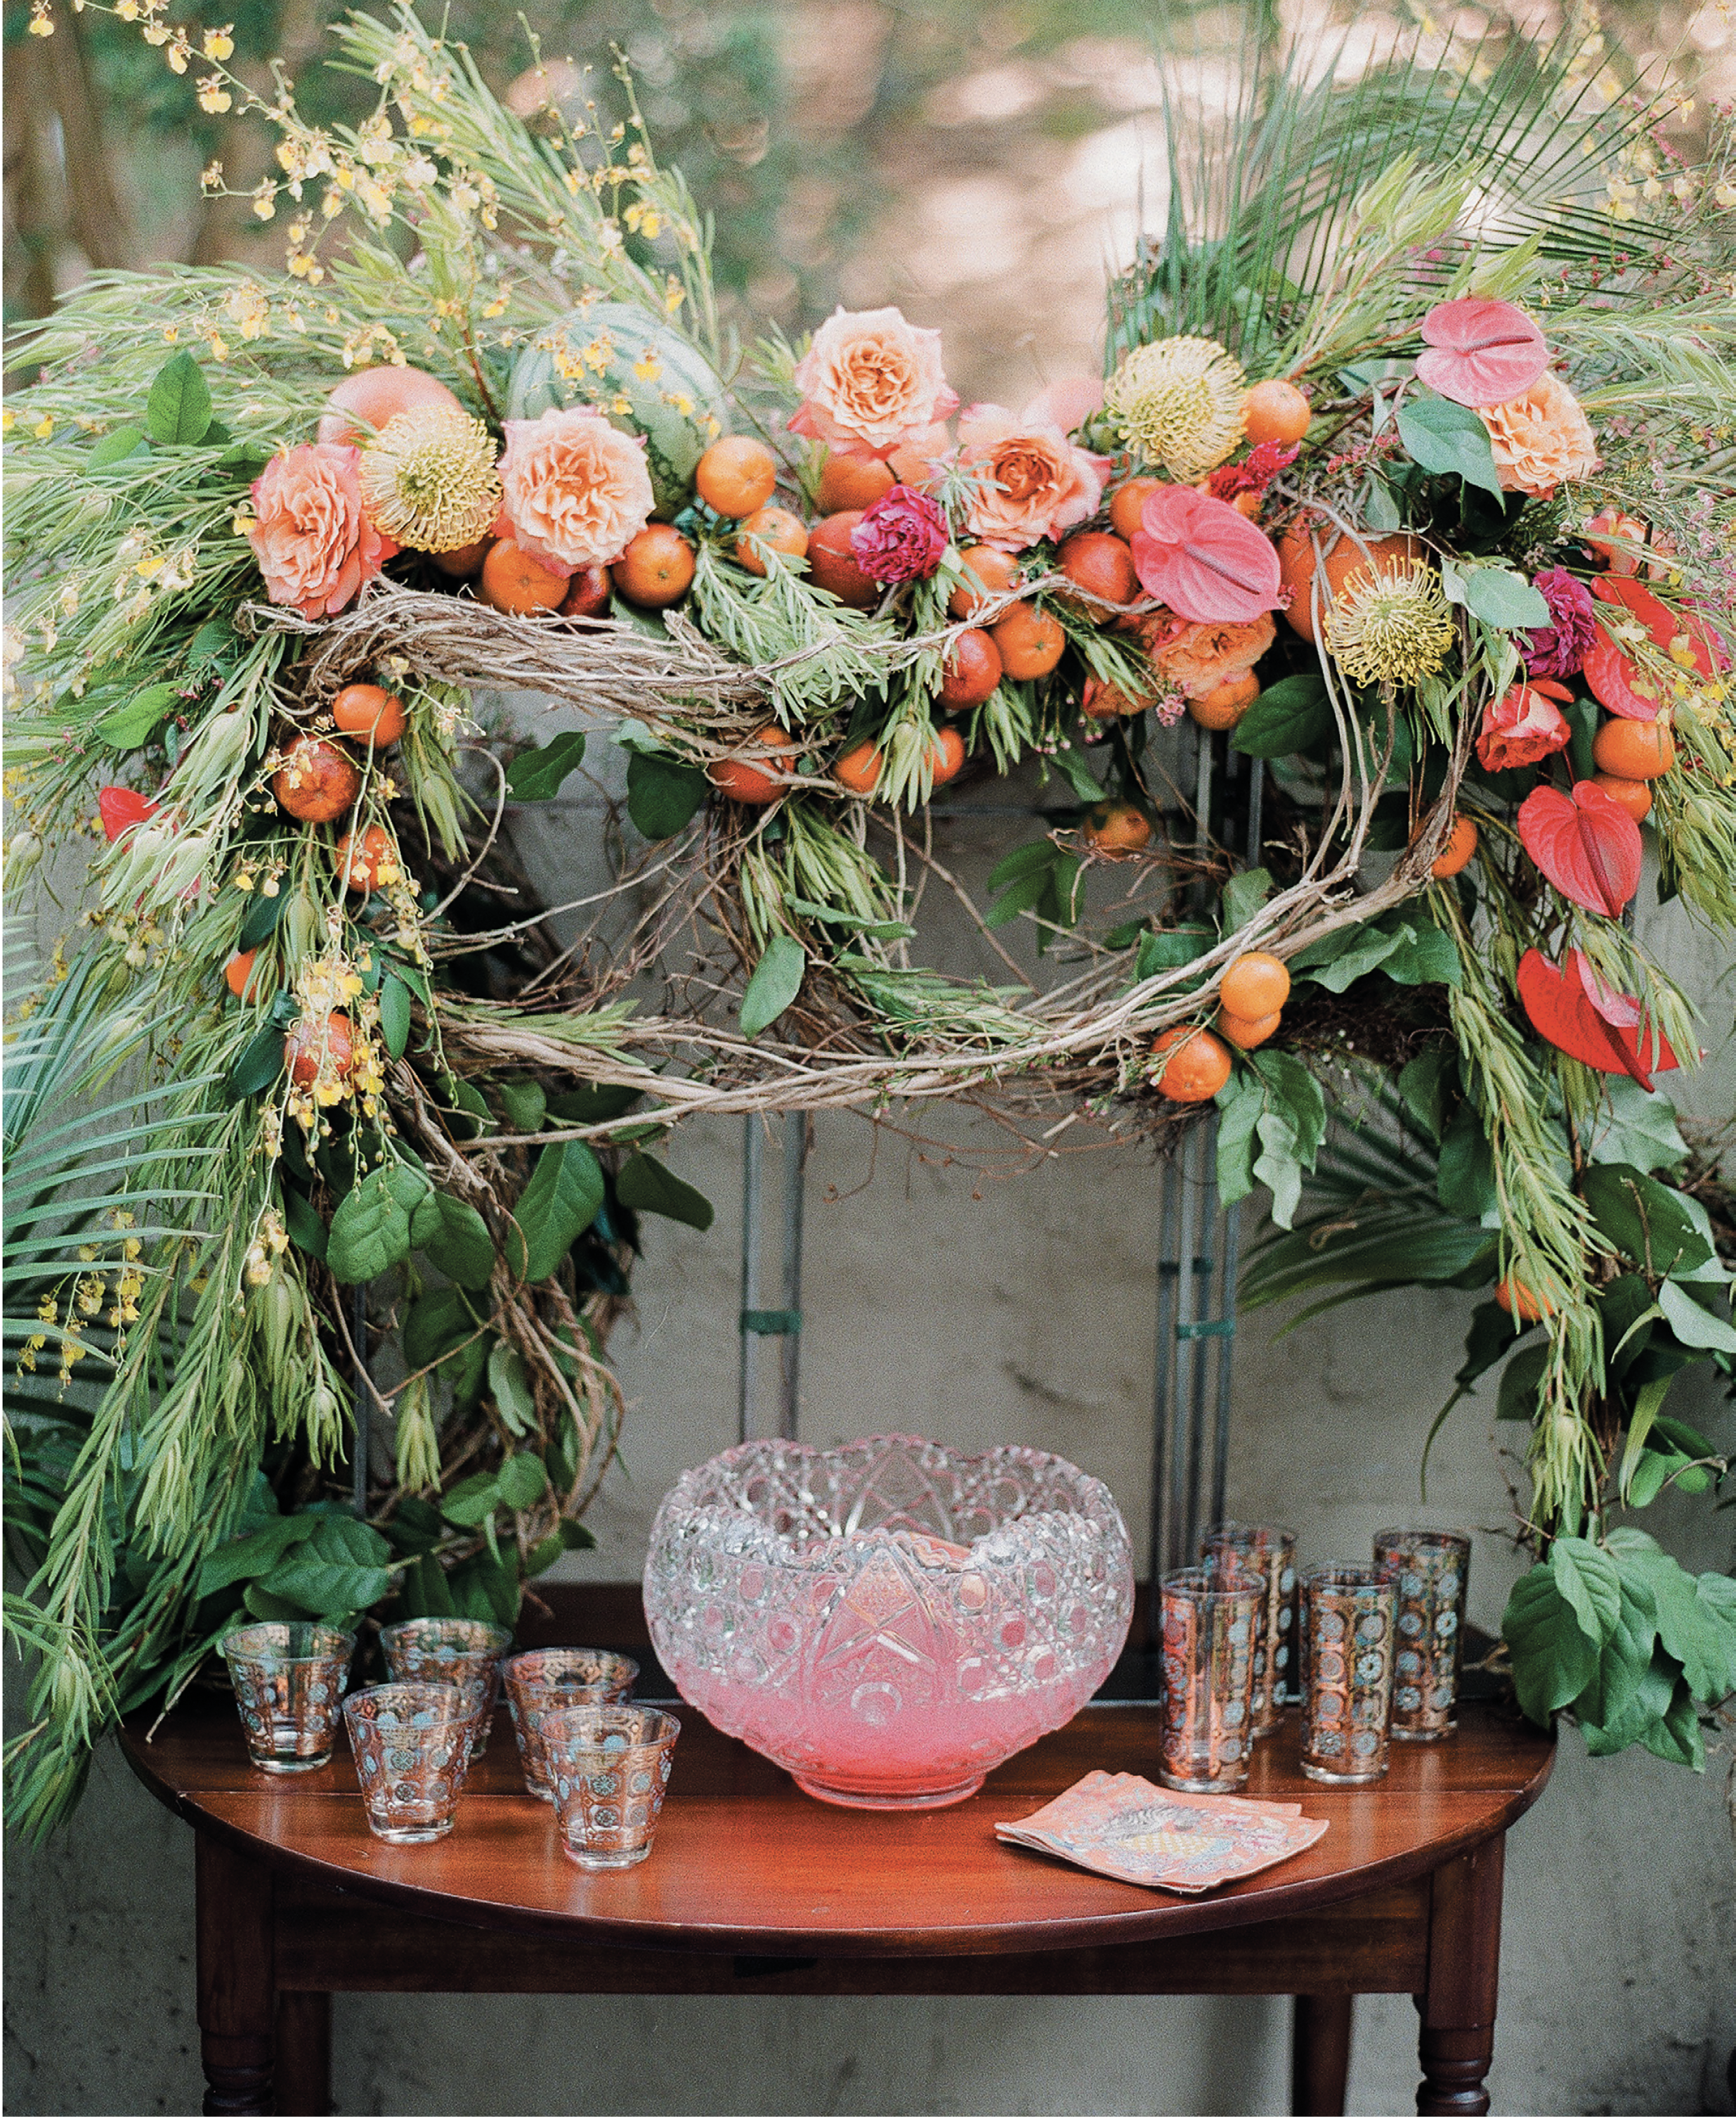 Wimberly Fair created the wow-factor floral and fruit arbor surrounding the punch table.